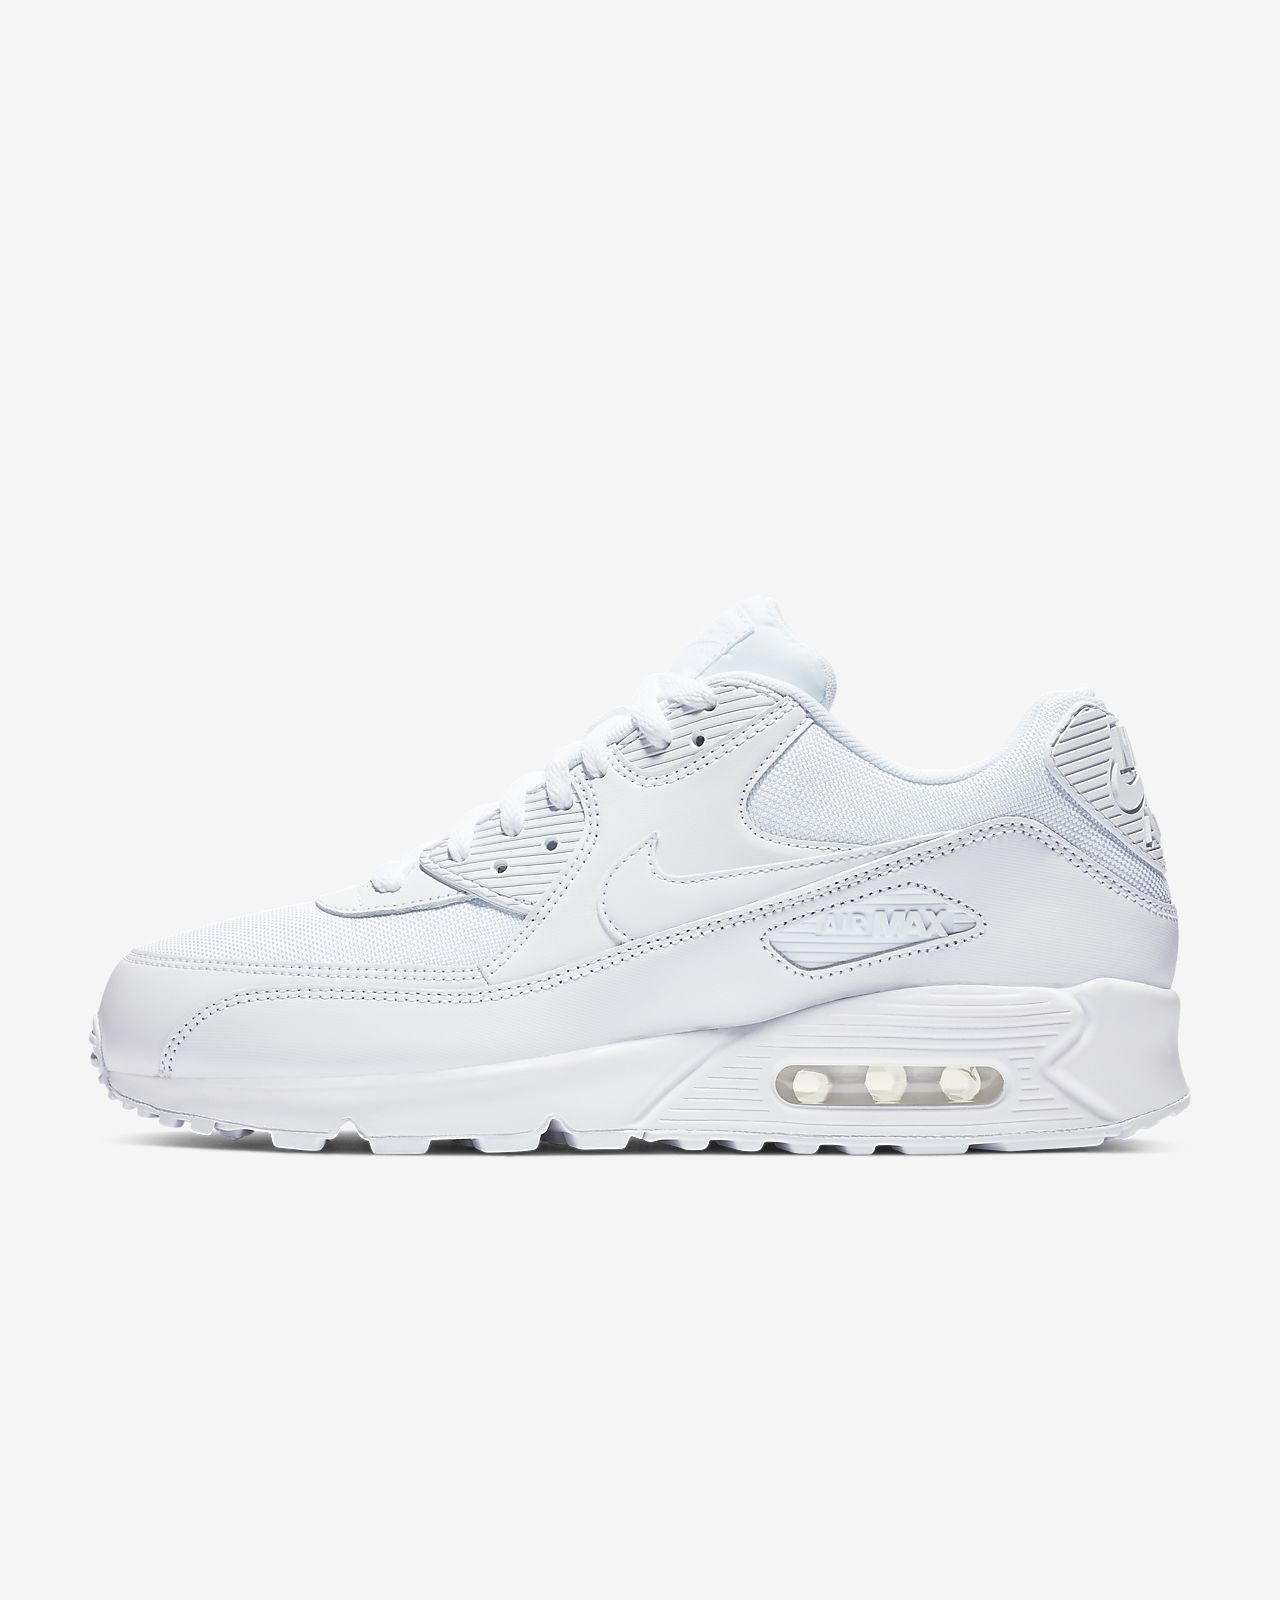 reputable site c5341 888f9 Nike Air Max 90 Essential